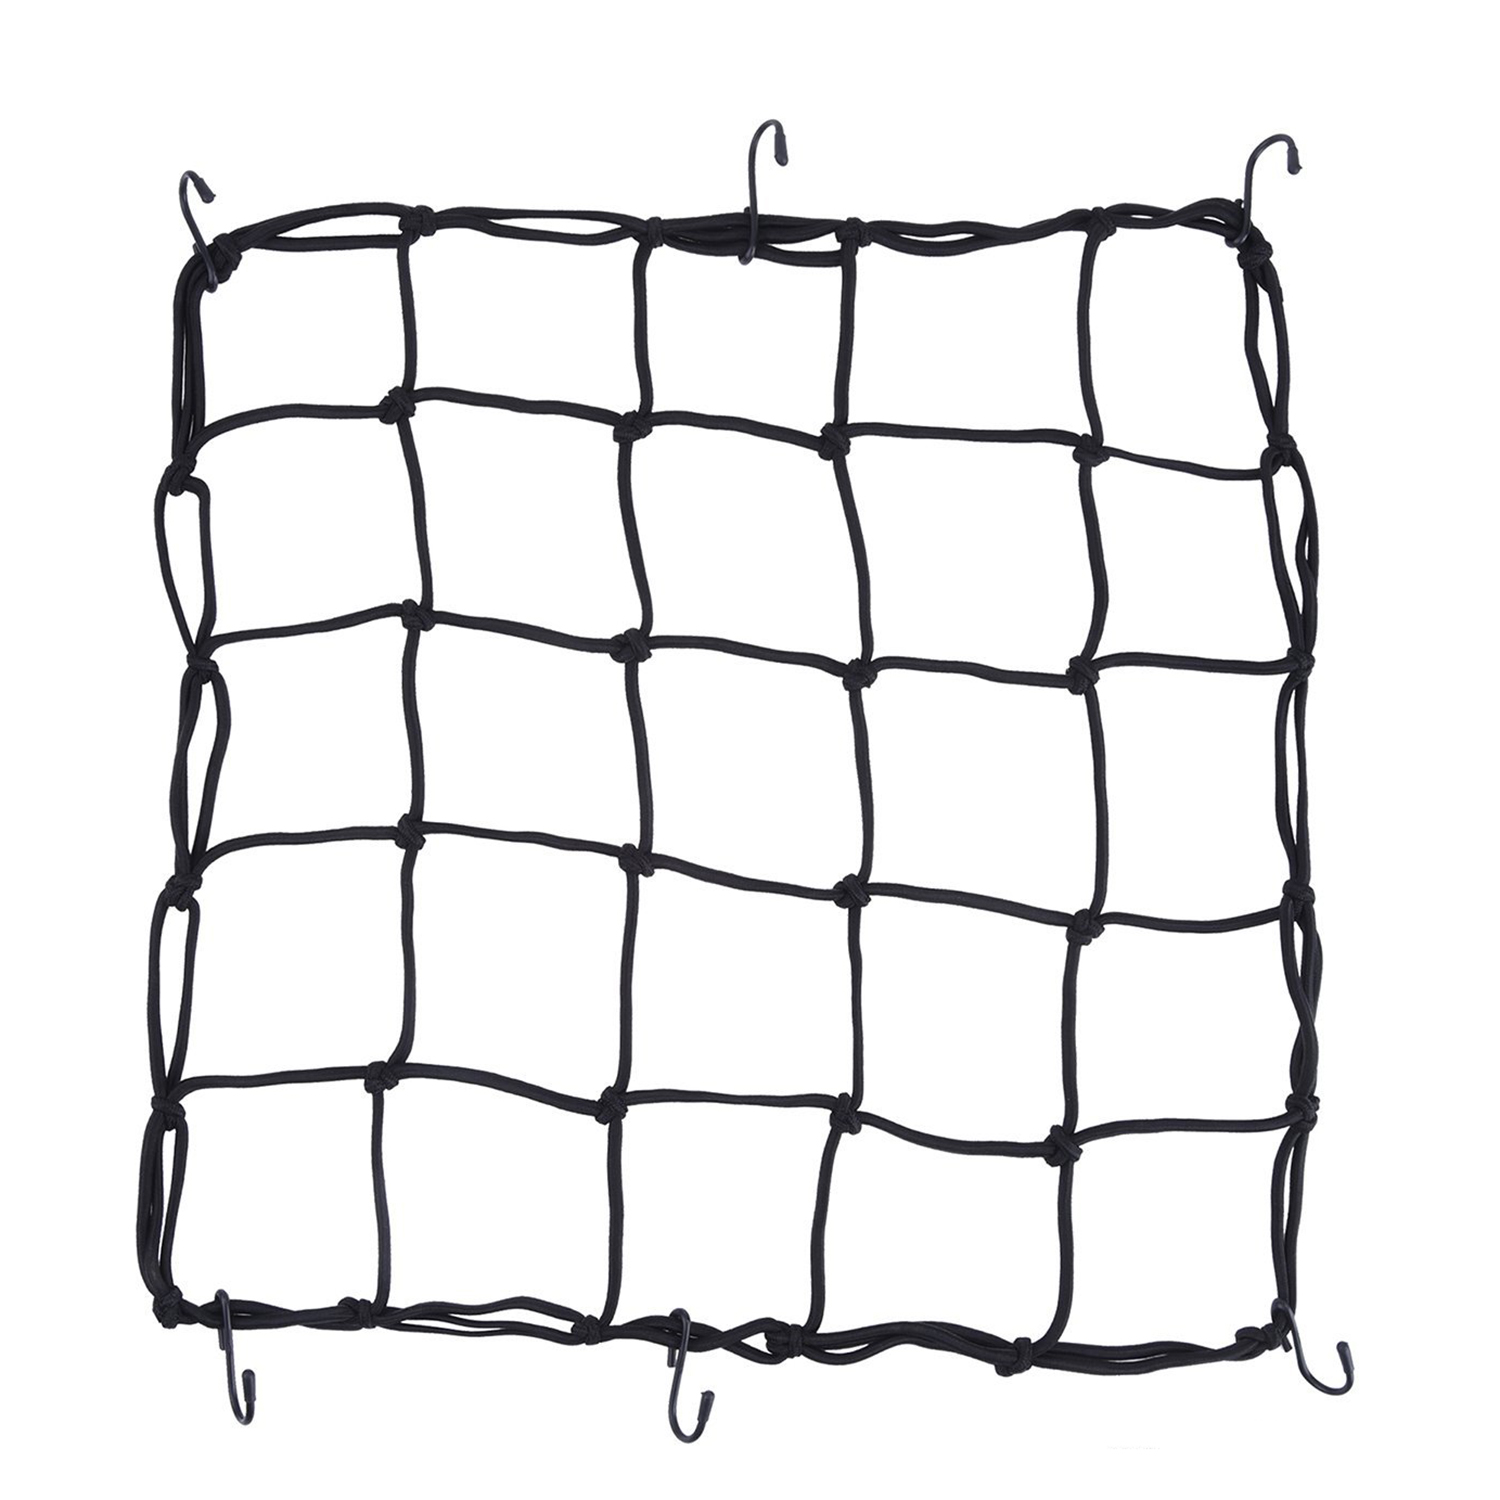 2 Pack Elasticated Cargo Nets Bicycle Motorcycle Luggage